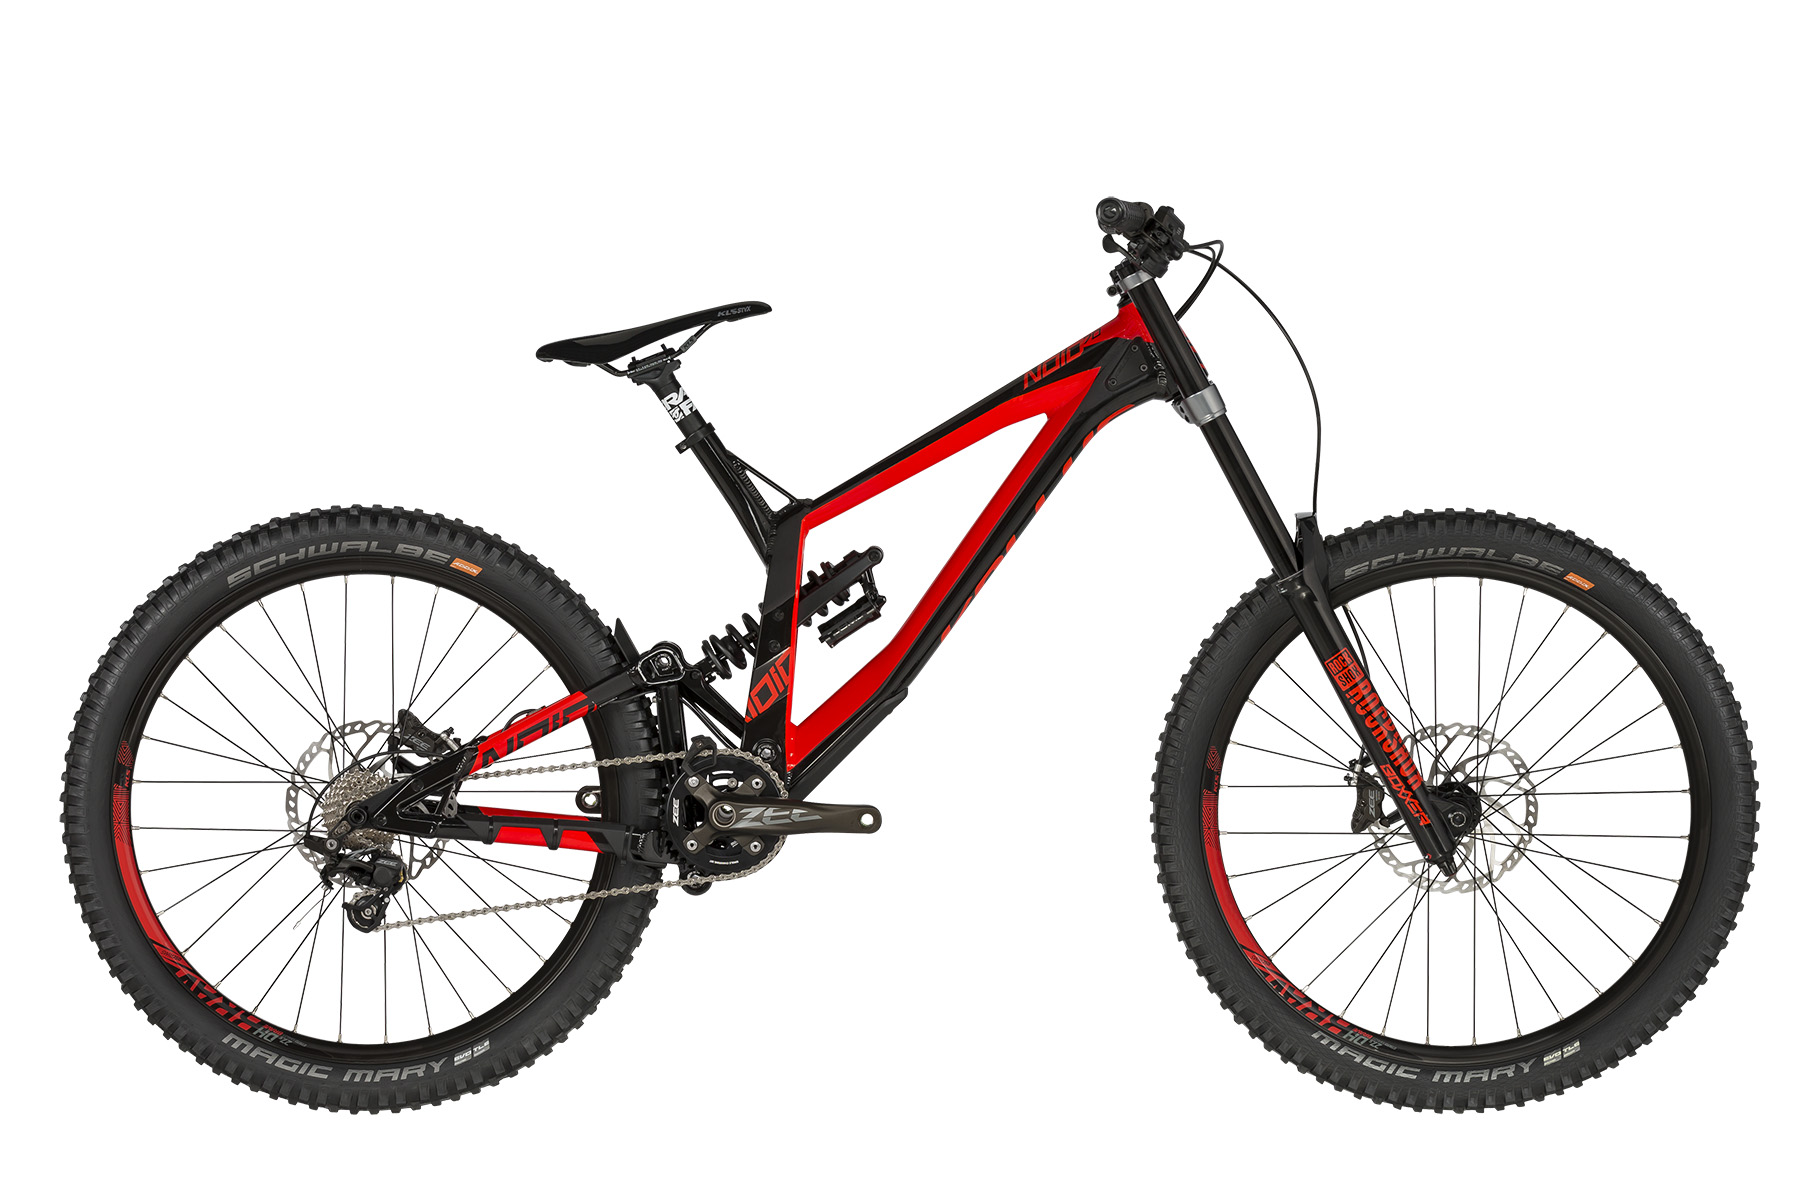 <strong>Bicicleta full suspension </strong>cu telescop pe fata&nbsp;ROCK SHOX Boxxer RC DebonAir (27.5) Boost, 200mm si telescop pe spate&nbsp;ROCK SHOX Super Deluxe Coil R / Rapid Recovery (250x75mm).</p><p><strong>Bicicleta downhill cu echipare Shimano Zee</strong> de 10 viteze si frane hidraulice Shimano Zee.</p><p><strong>frame</strong>&nbsp;KELLYS Gravity DH 27.5 / Think Link suspension system, 205mm rear travel, internal routing, ISCG 05, 12x150mm thru axle<br /><strong>frame size</strong>&nbsp;M / L / XL<br /><strong>fork</strong>&nbsp;ROCK SHOX Boxxer RC DebonAir (27.5) Boost, 200mm, Charger RC Damper / Maxle Stealth 20mm thru axle<br /><strong>rear shock</strong>&nbsp;ROCK SHOX Super Deluxe Coil R / Rapid Recovery (250x75mm)<br /><strong>head parts</strong>&nbsp;FSA 1.5 integrated<br /><strong>b.b.parts</strong>&nbsp;SHIMANO Press-Fit BB71-41A<br /><strong>crankset</strong>&nbsp;SHIMANO Zee M645 (34) - length 165mm<br /><strong>shifters</strong>&nbsp;SHIMANO Zee SL-M640 Rapidfire Plus (rear)<br /><strong>f/derailleur</strong>&nbsp;chain guide MOZARTT HXR, ISCG 05<br /><strong>r/derailleur</strong>&nbsp;SHIMANO Zee M640 (direct mount)<br /><strong>speed</strong>&nbsp;10<br /><strong>cassette sprocket</strong>&nbsp;SHIMANO CS-HG500-10 (11-25)<br /><strong>chain</strong>&nbsp;KMC X10 EL (106 links)<br /><strong>brakes</strong>&nbsp;SHIMANO Zee M640 Hydraulic Disc<br /><strong>brake rotors</strong>&nbsp;203mm front / 203mm rear<br /><strong>brake levers</strong>&nbsp;SHIMANO Zee BL-M640<br /><strong>hubs</strong>&nbsp;NOVATEC DH Disc (20x110mm / 12x150mm / 32 holes)<br /><strong>thru axle</strong>&nbsp;ROCK SHOX Maxle Stealth 20x110mm front / Mr.CONTROL 12x150mm rear<br /><strong>rims</strong>&nbsp;KLS Brave Disc 584x23 (32 holes)<br /><strong>spokes</strong>&nbsp;stainless steel black<br /><strong>tires</strong>&nbsp;SCHWALBE Magic Mary 60-584 (27.5x2.35) SnakeSkin, Tubeless Easy, ADDIX Soft, folding<br /><strong>stem</strong>&nbsp;RACE FACE Chester DM 35 - di